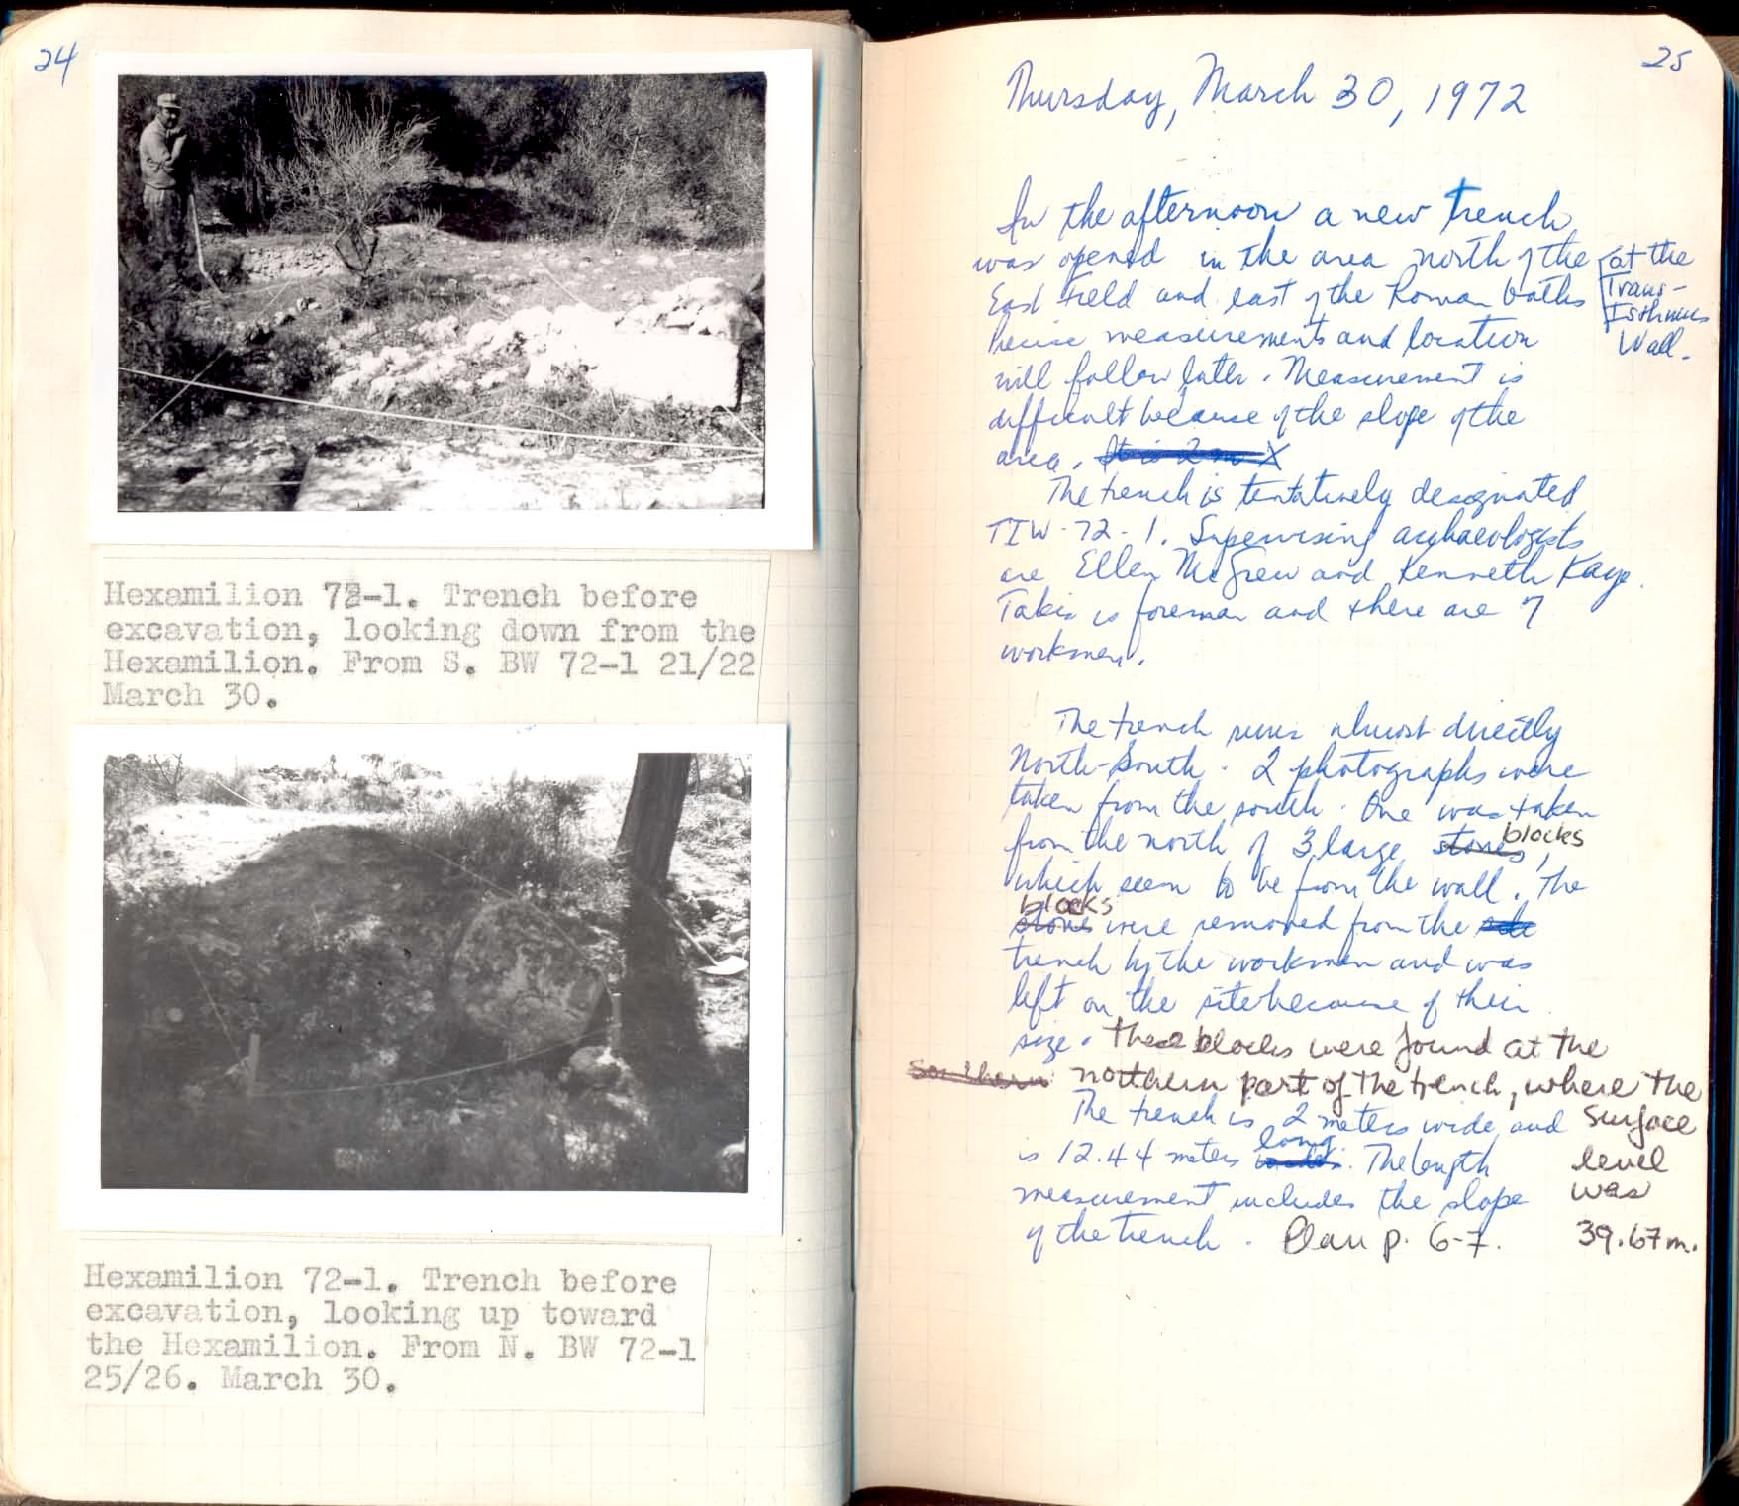 Photograph of a spread with notes and images from an archeological excavation notebook.